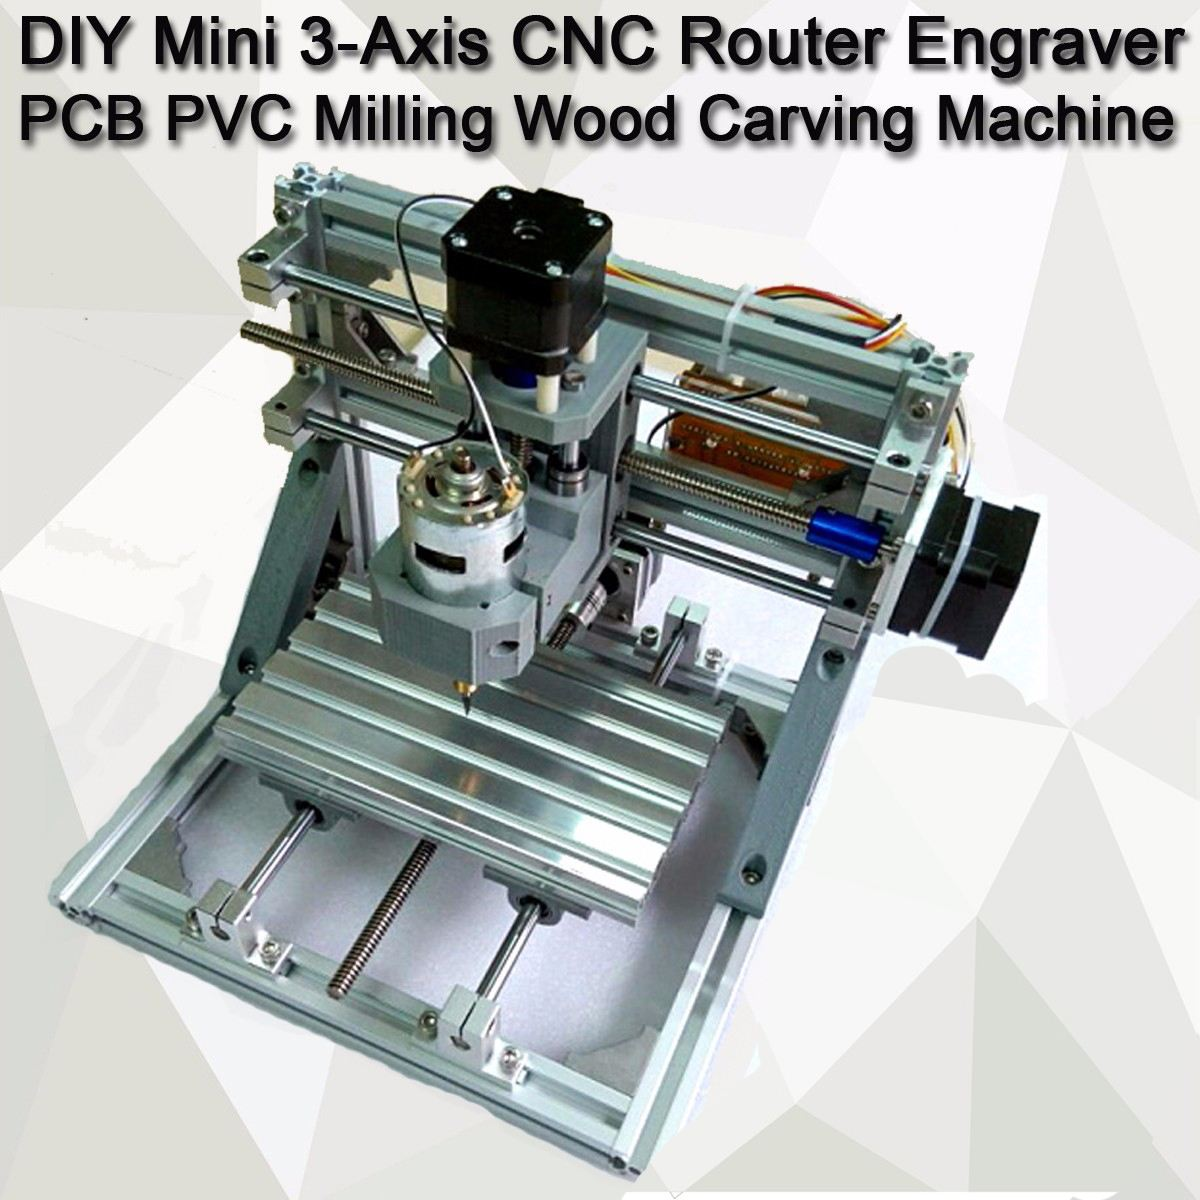 DIY Mini 3 Axis CNC Router Engraver PCB PVC Milling Wood Carving Machine DIY M cnc 5axis a aixs rotary axis t chuck type for cnc router cnc milling machine best quality